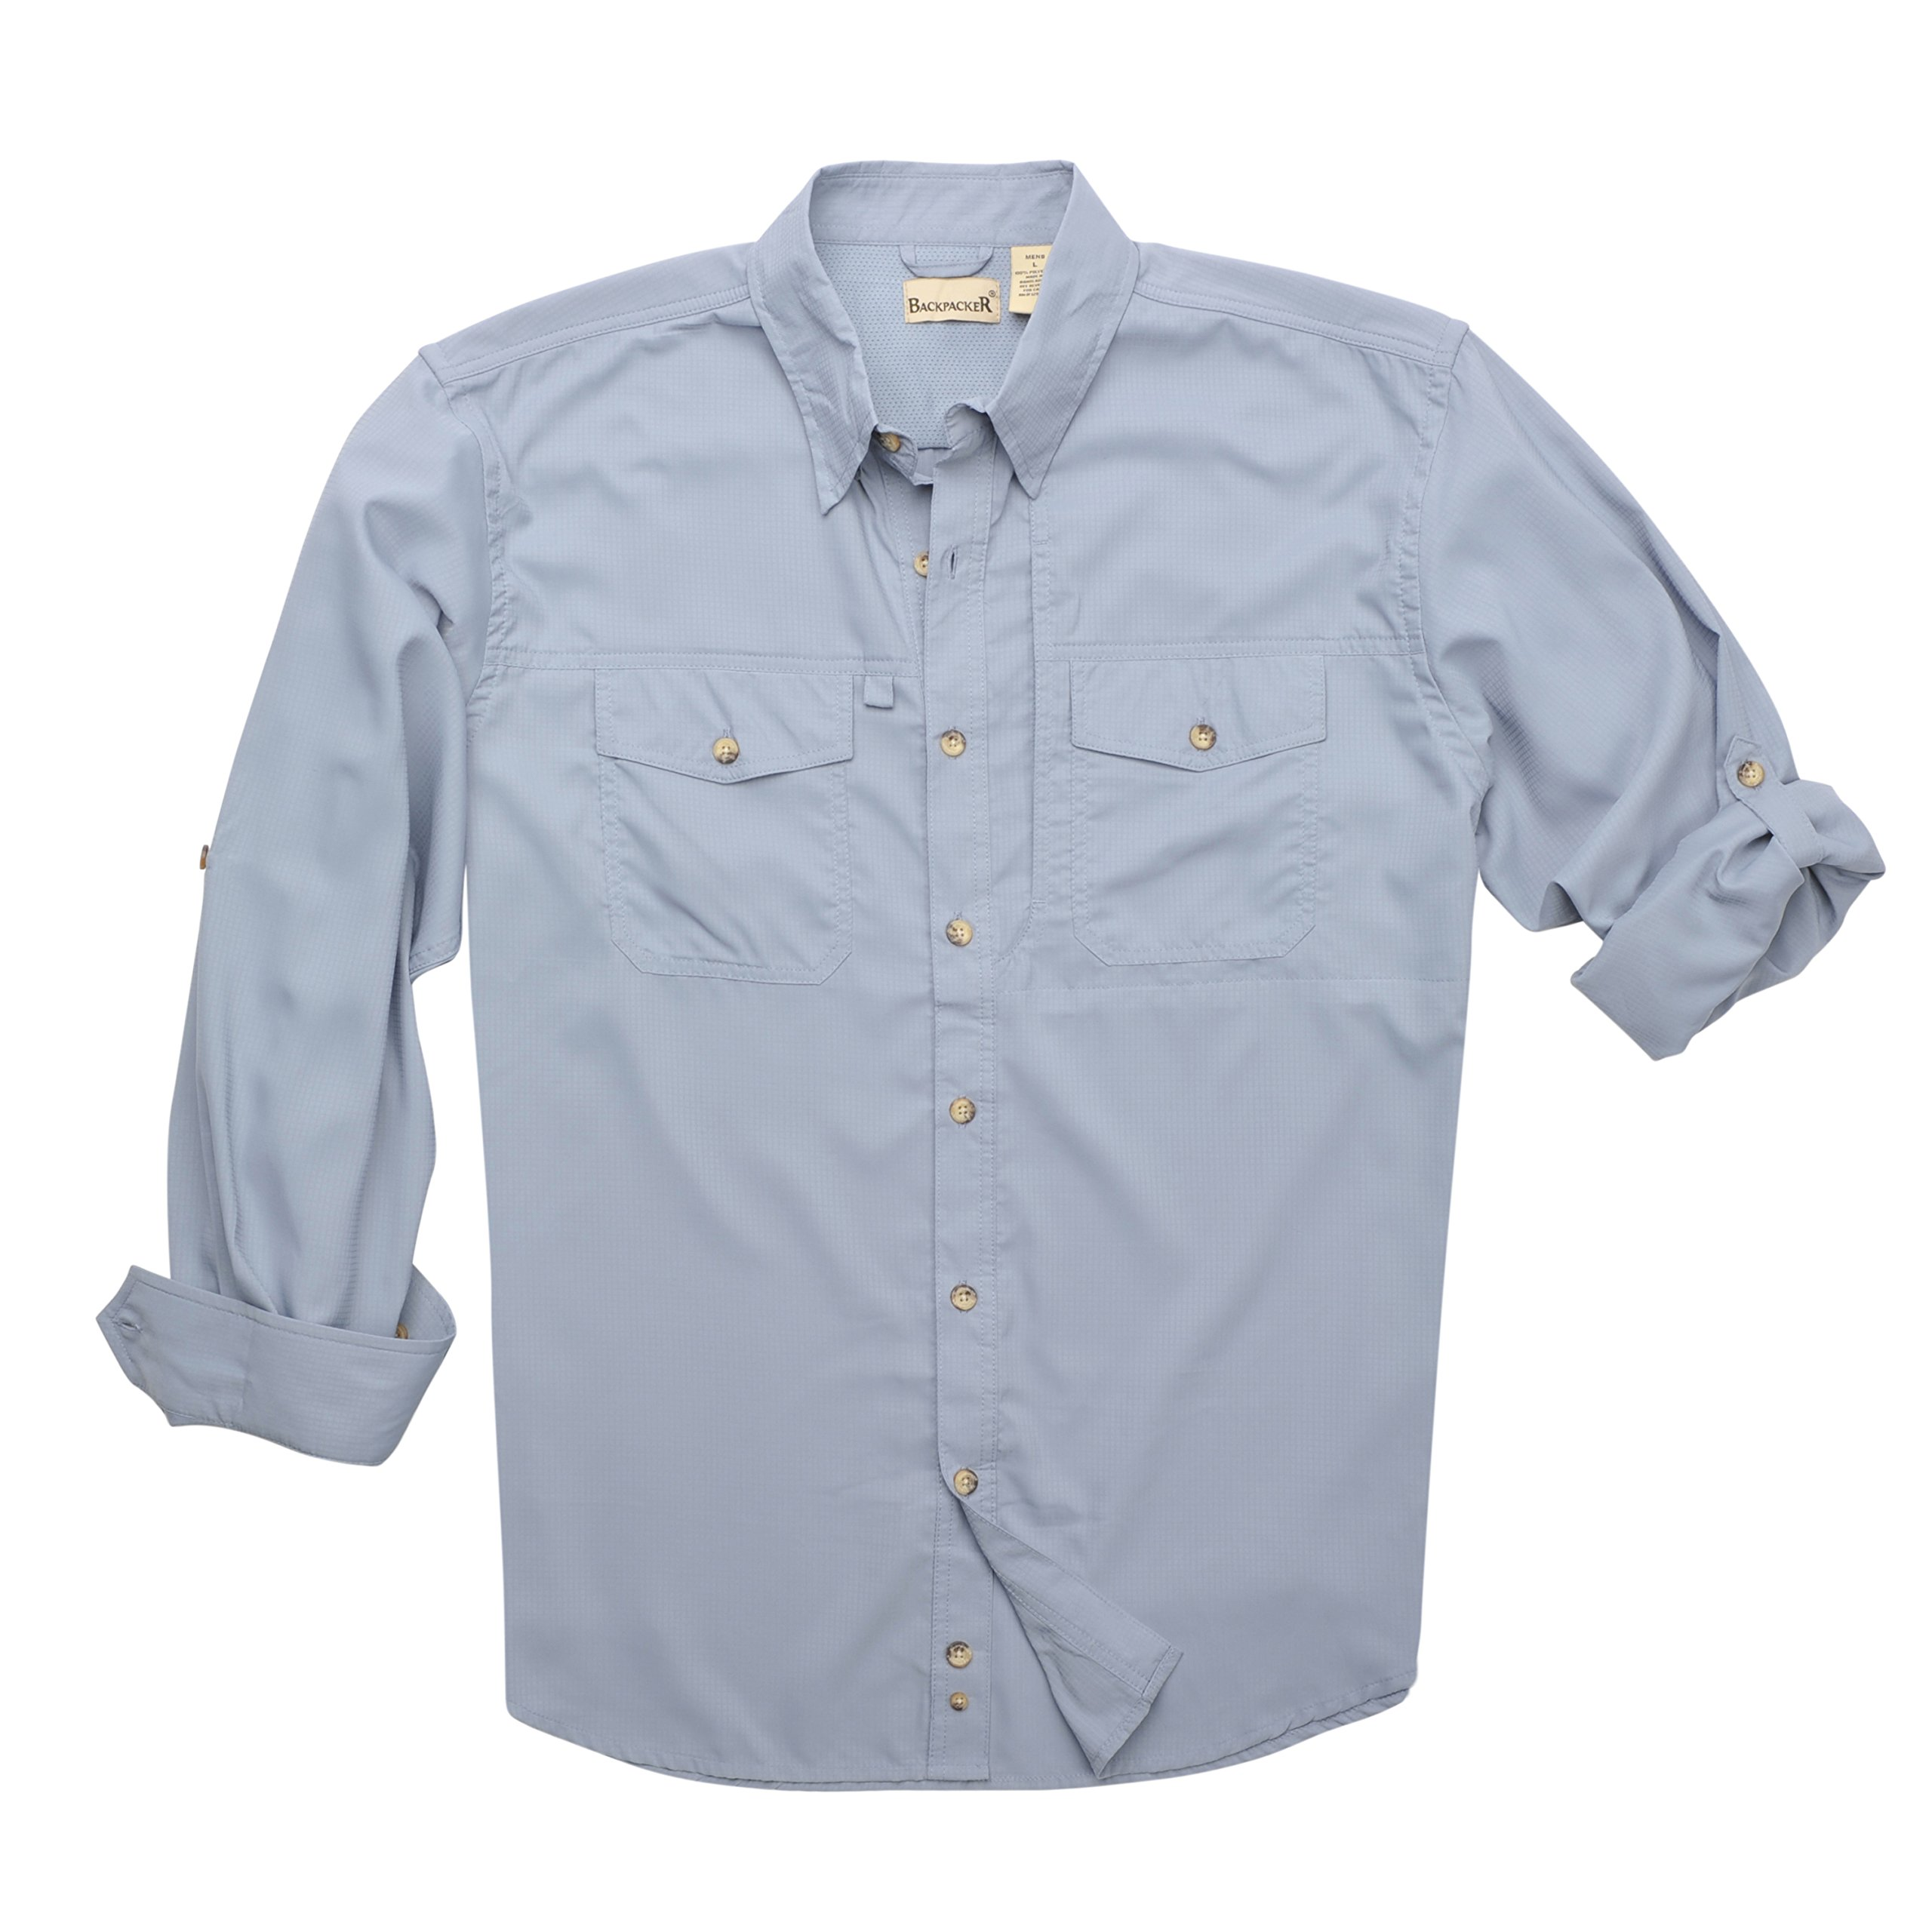 Backpacker Expedition Travel Shirt, Twilight, X-Large